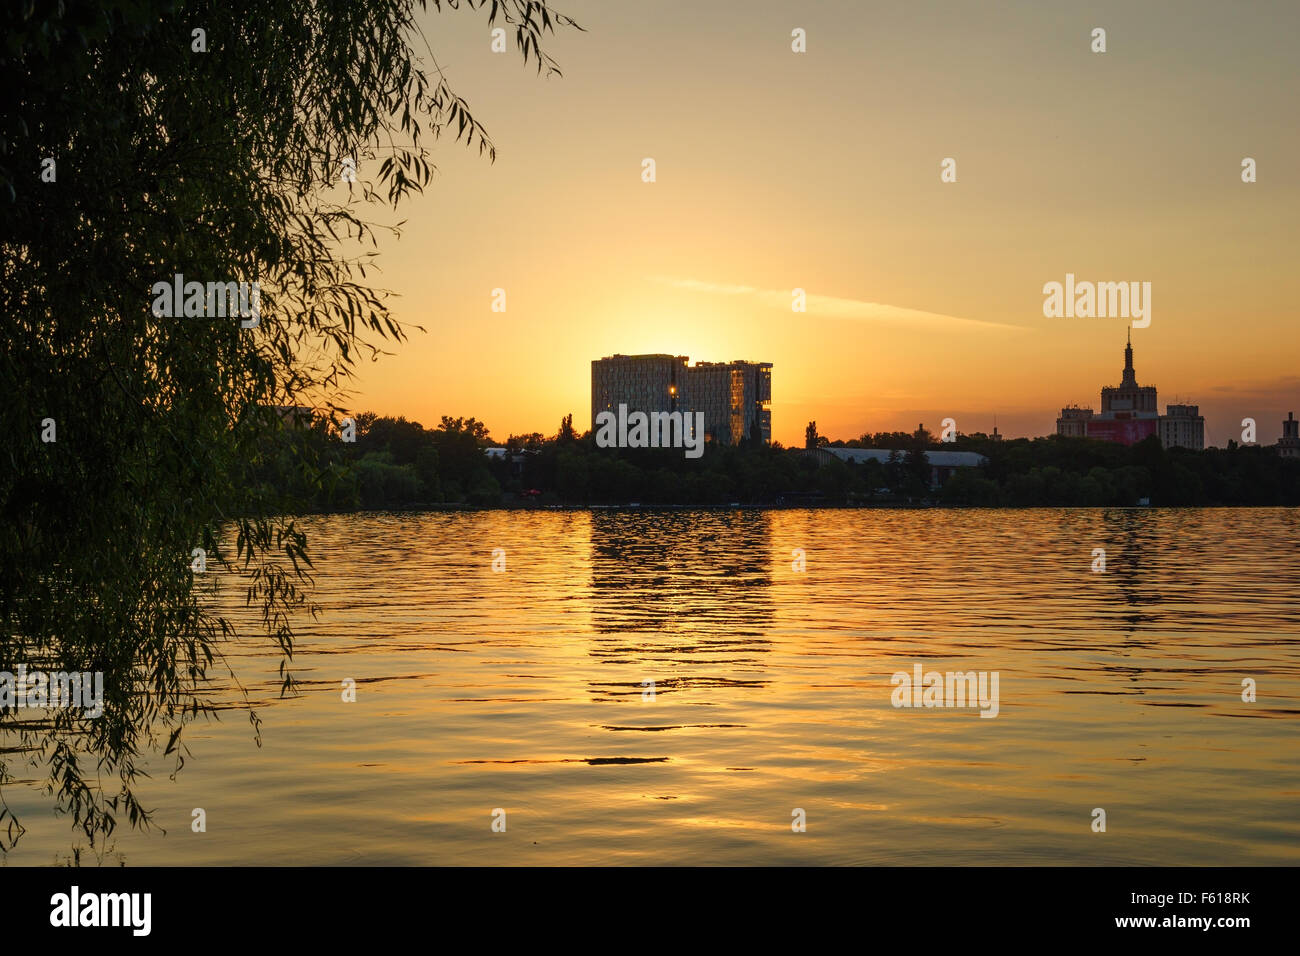 Sunset over the lake at Herastrau Park in Bucharest, Romania. - Stock Image